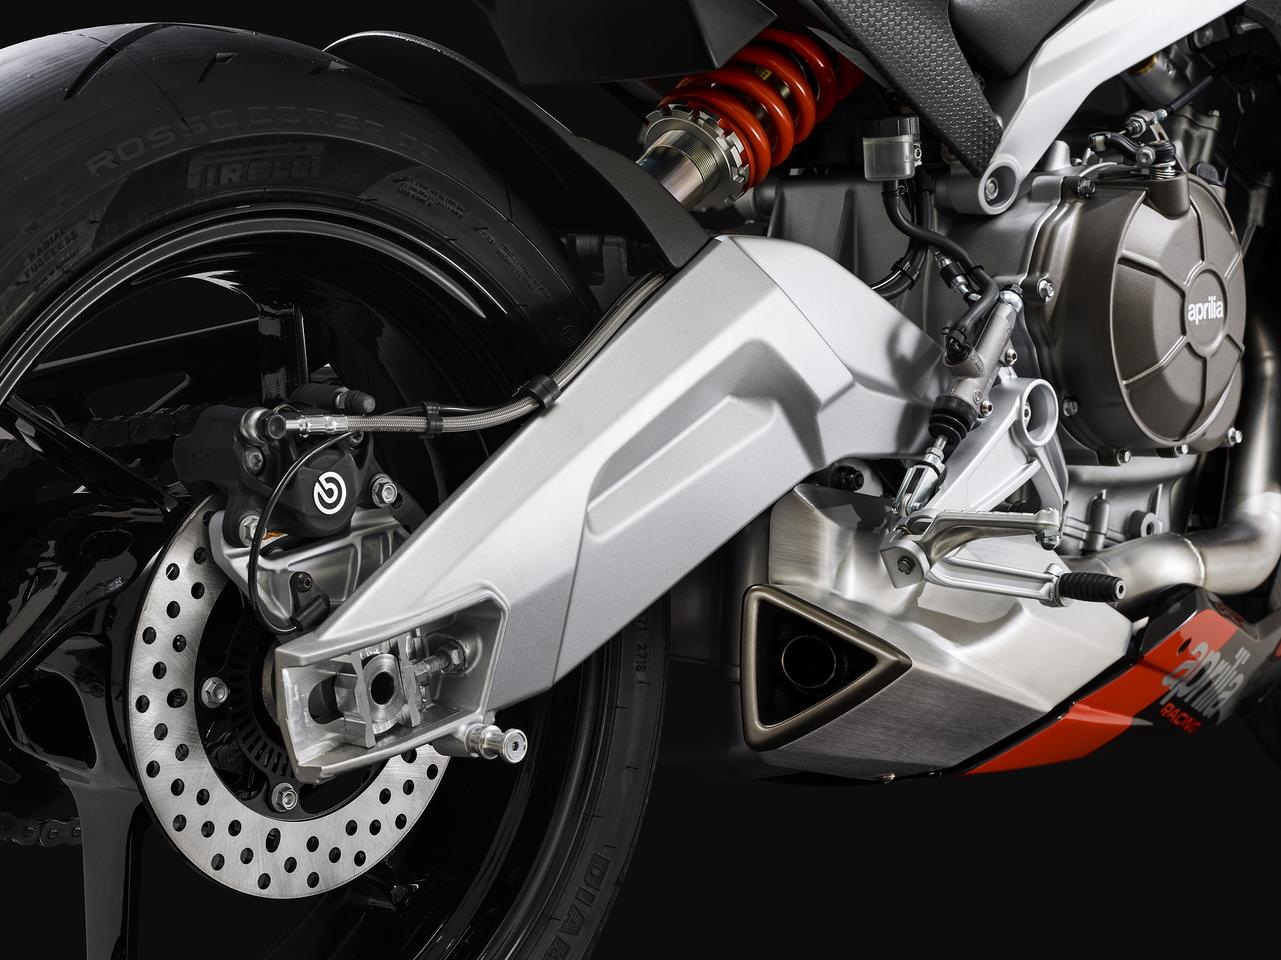 Sexy aluminum swingarm and underslung, hidden exhaust